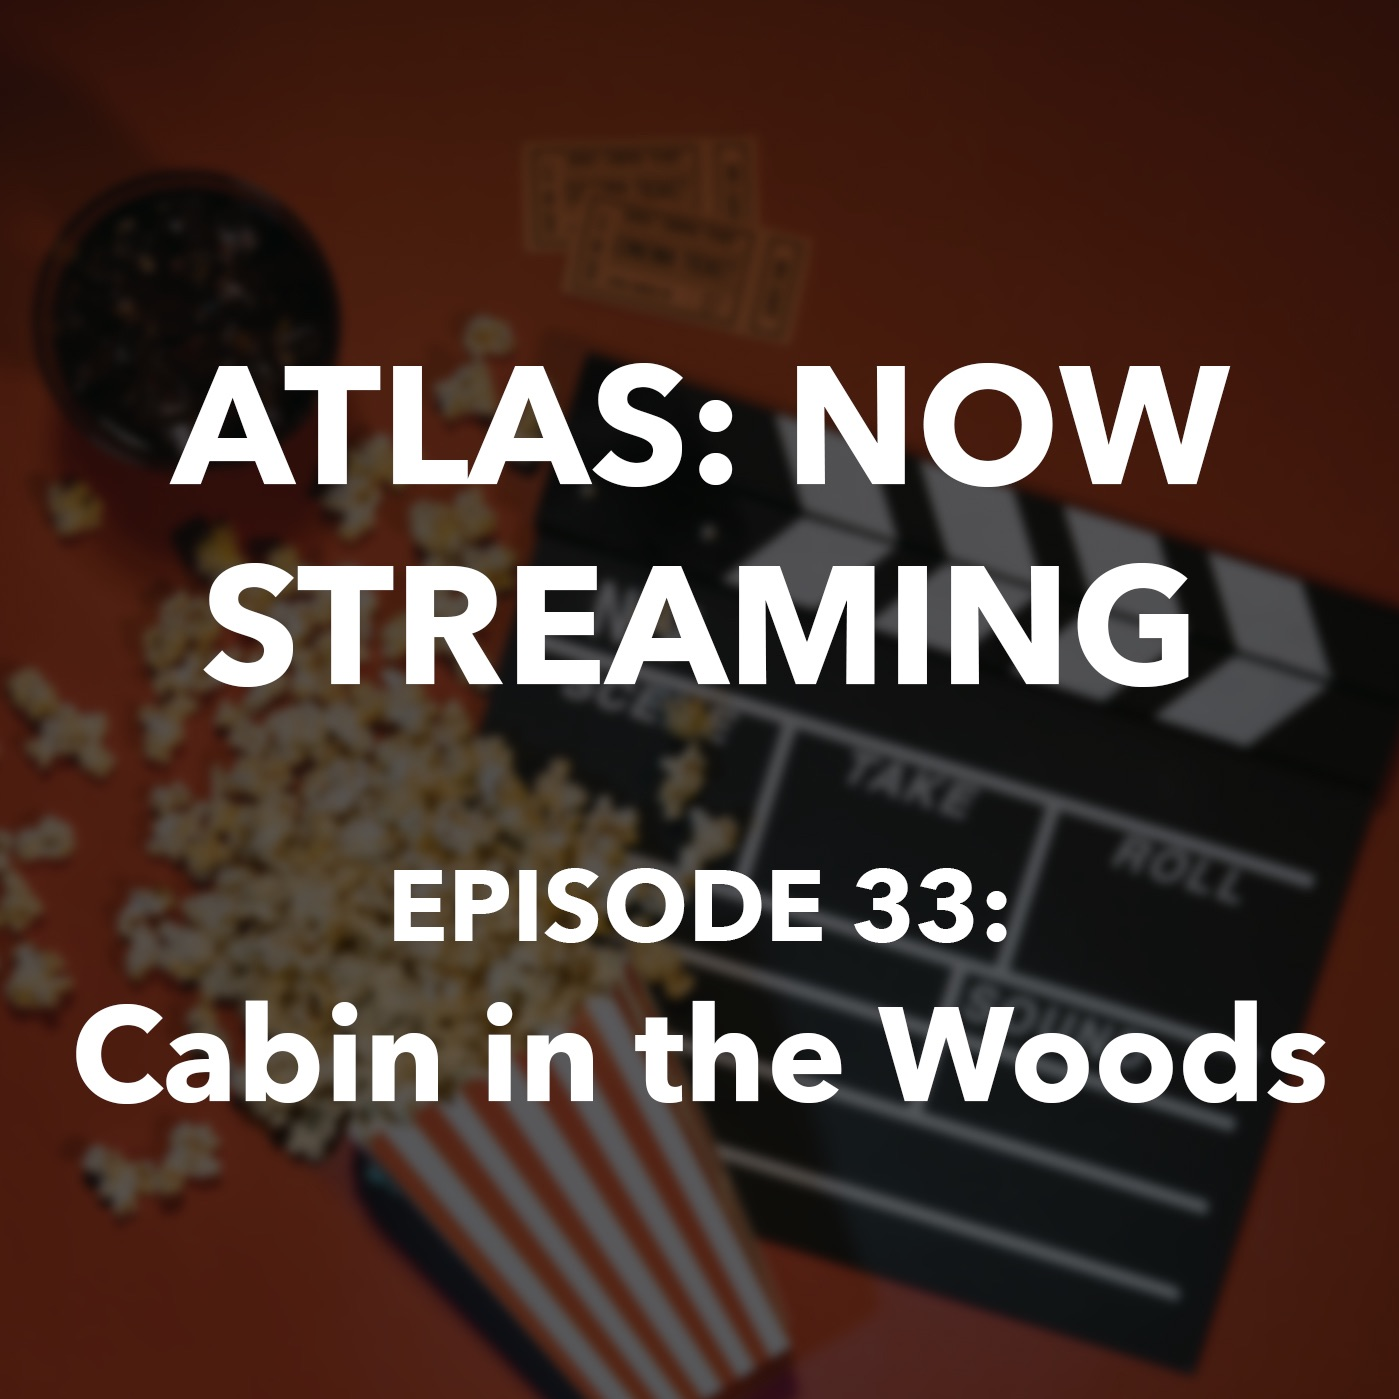 Cabin in the Woods - Atlas: Now Streaming Episode 33